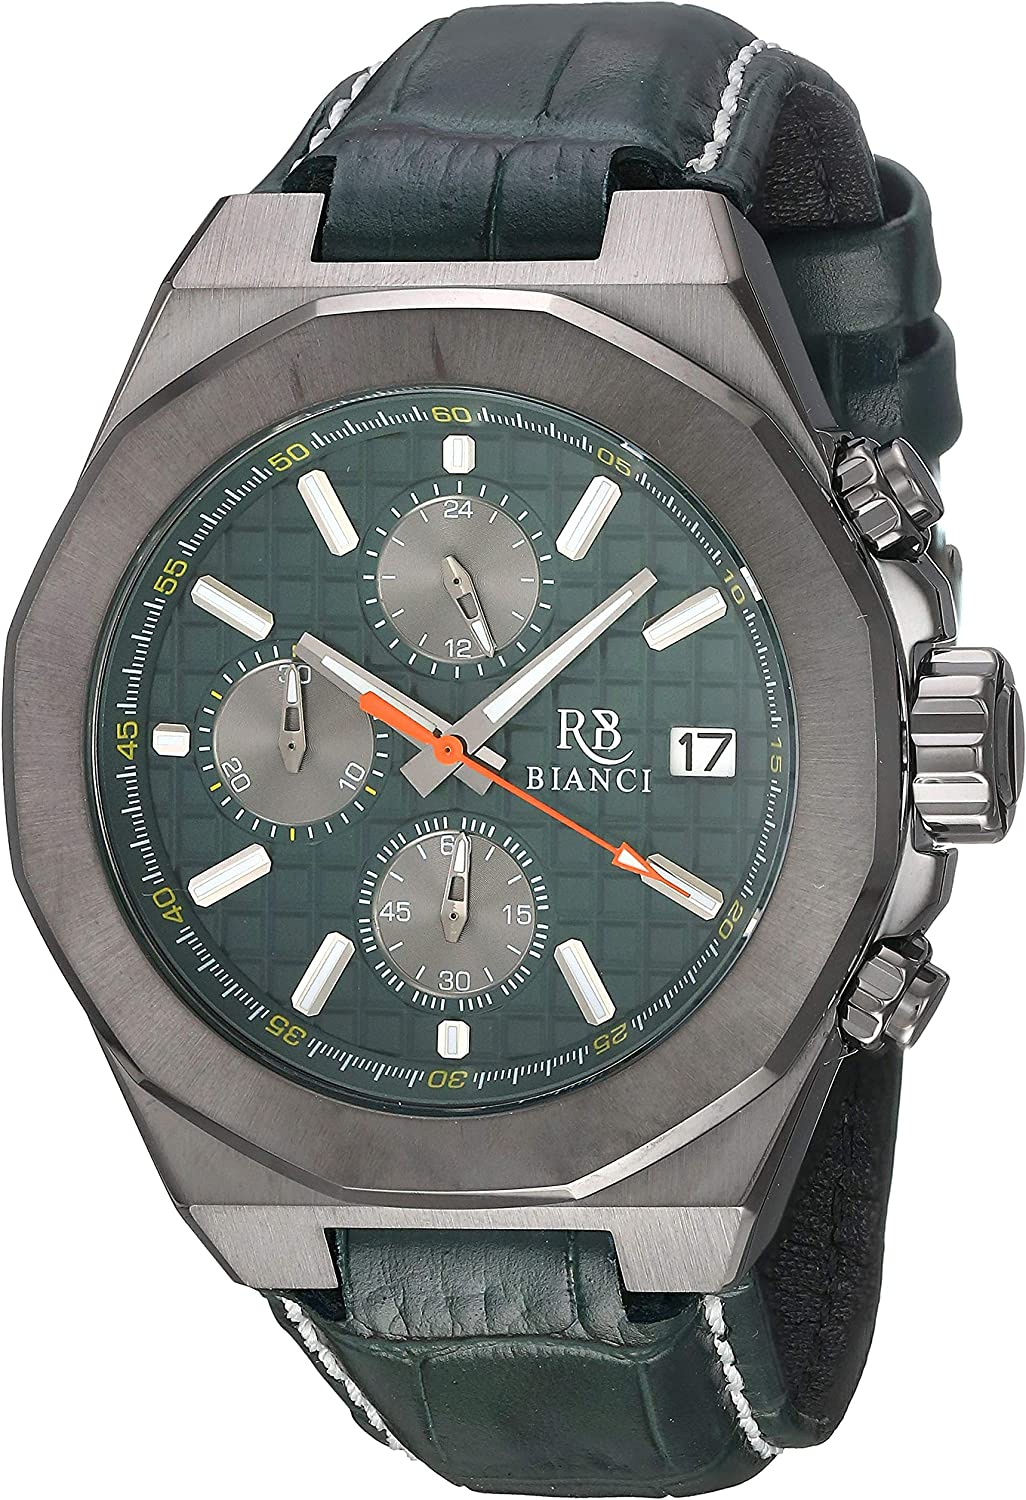 ROBERTO BIANCI WATCHES Men's Fratelli Stainless Steel Quartz Leather Calfskin Strap, Green, 22 Casual Watch (Model: RB0137) 91tmMcCI5PLUL1500_